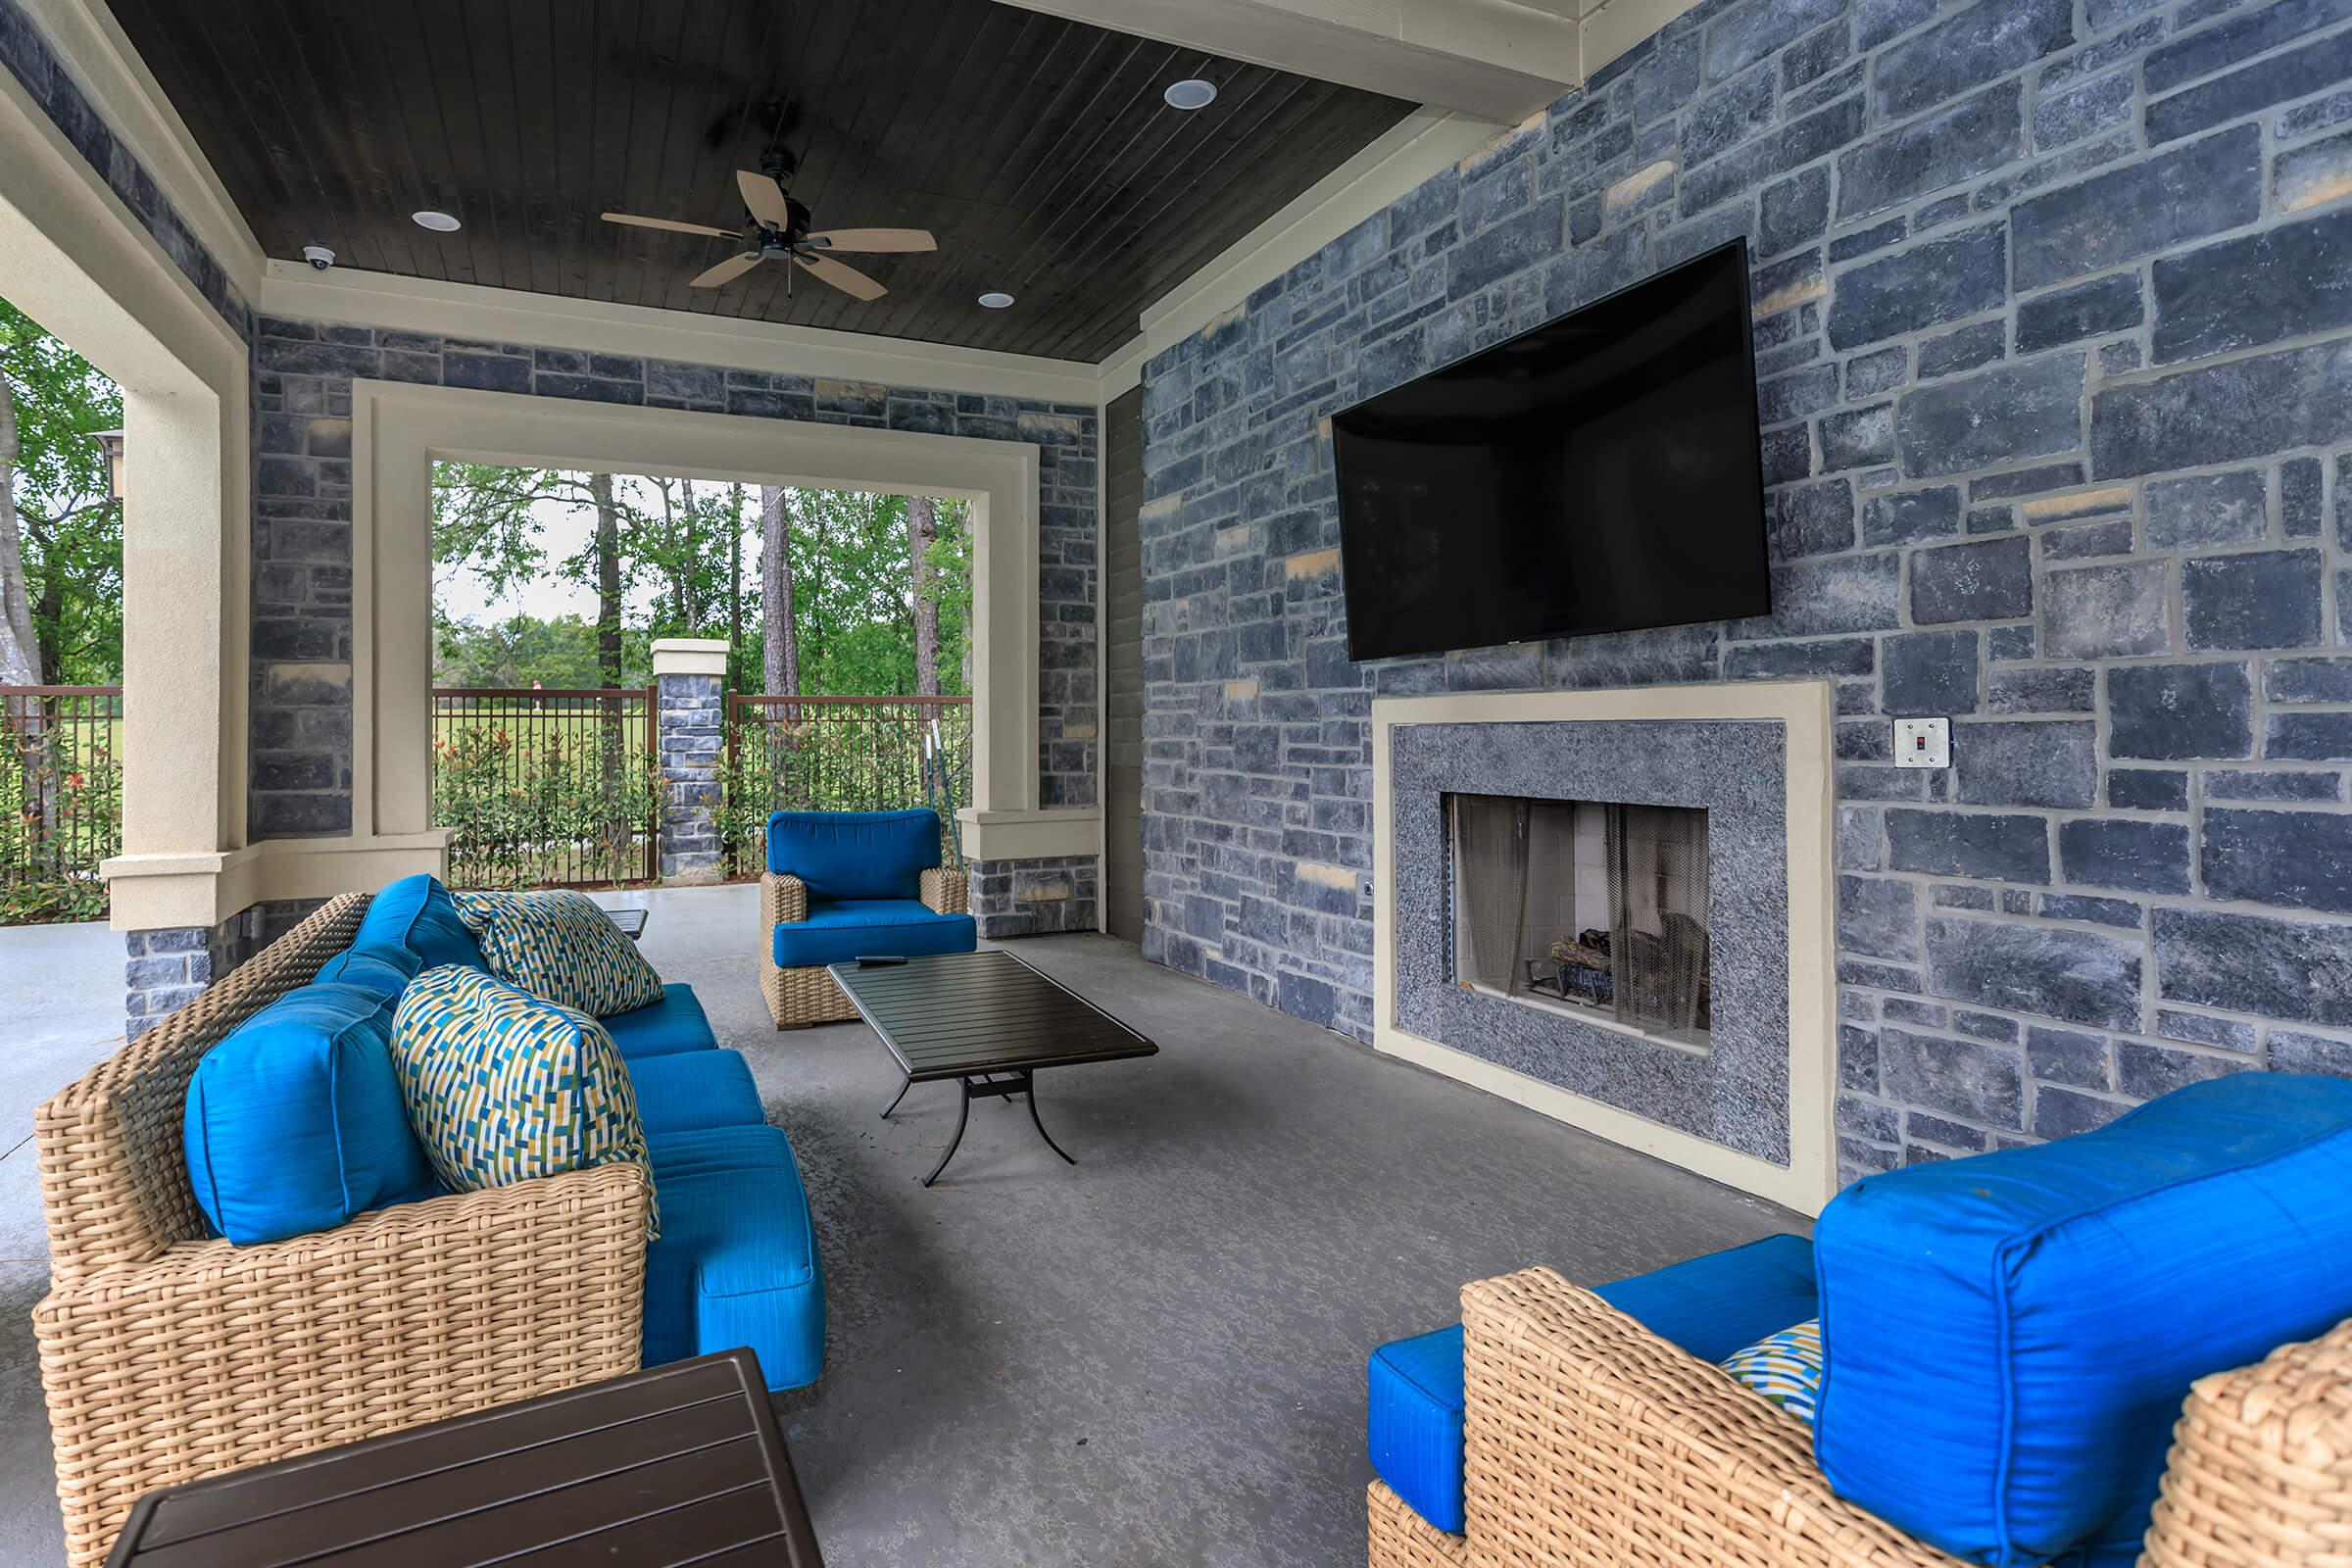 Outdoor lounge with fireplace, tv, and plush blue cushions on wicker seating.